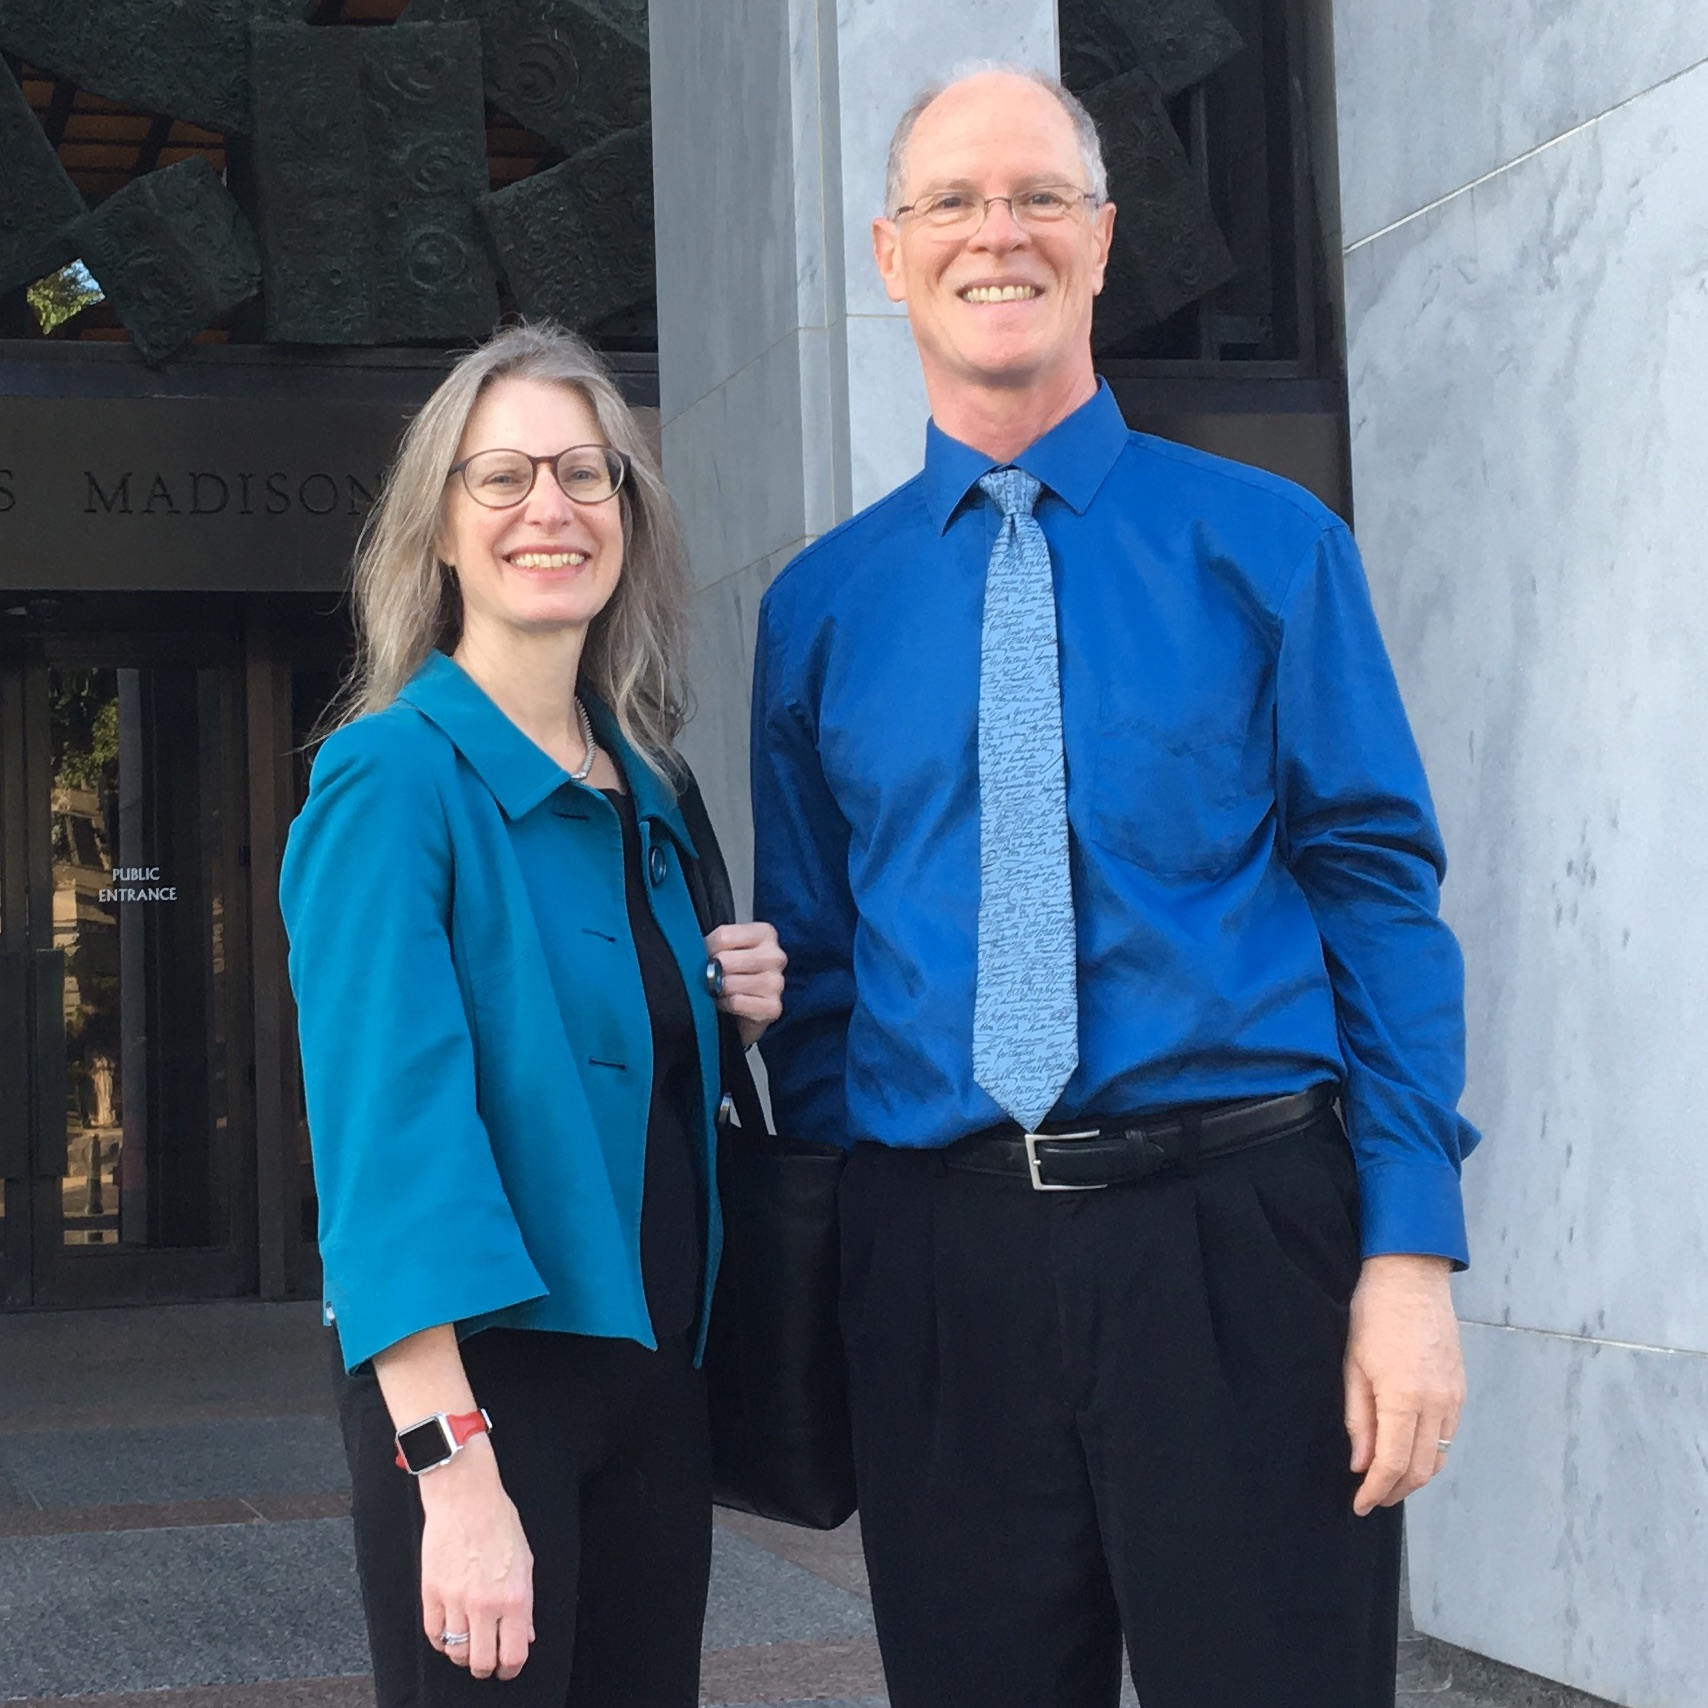 Alison Noyes and Rich Cairn smile as they stand in front of Madison Building of the Library of Congress.